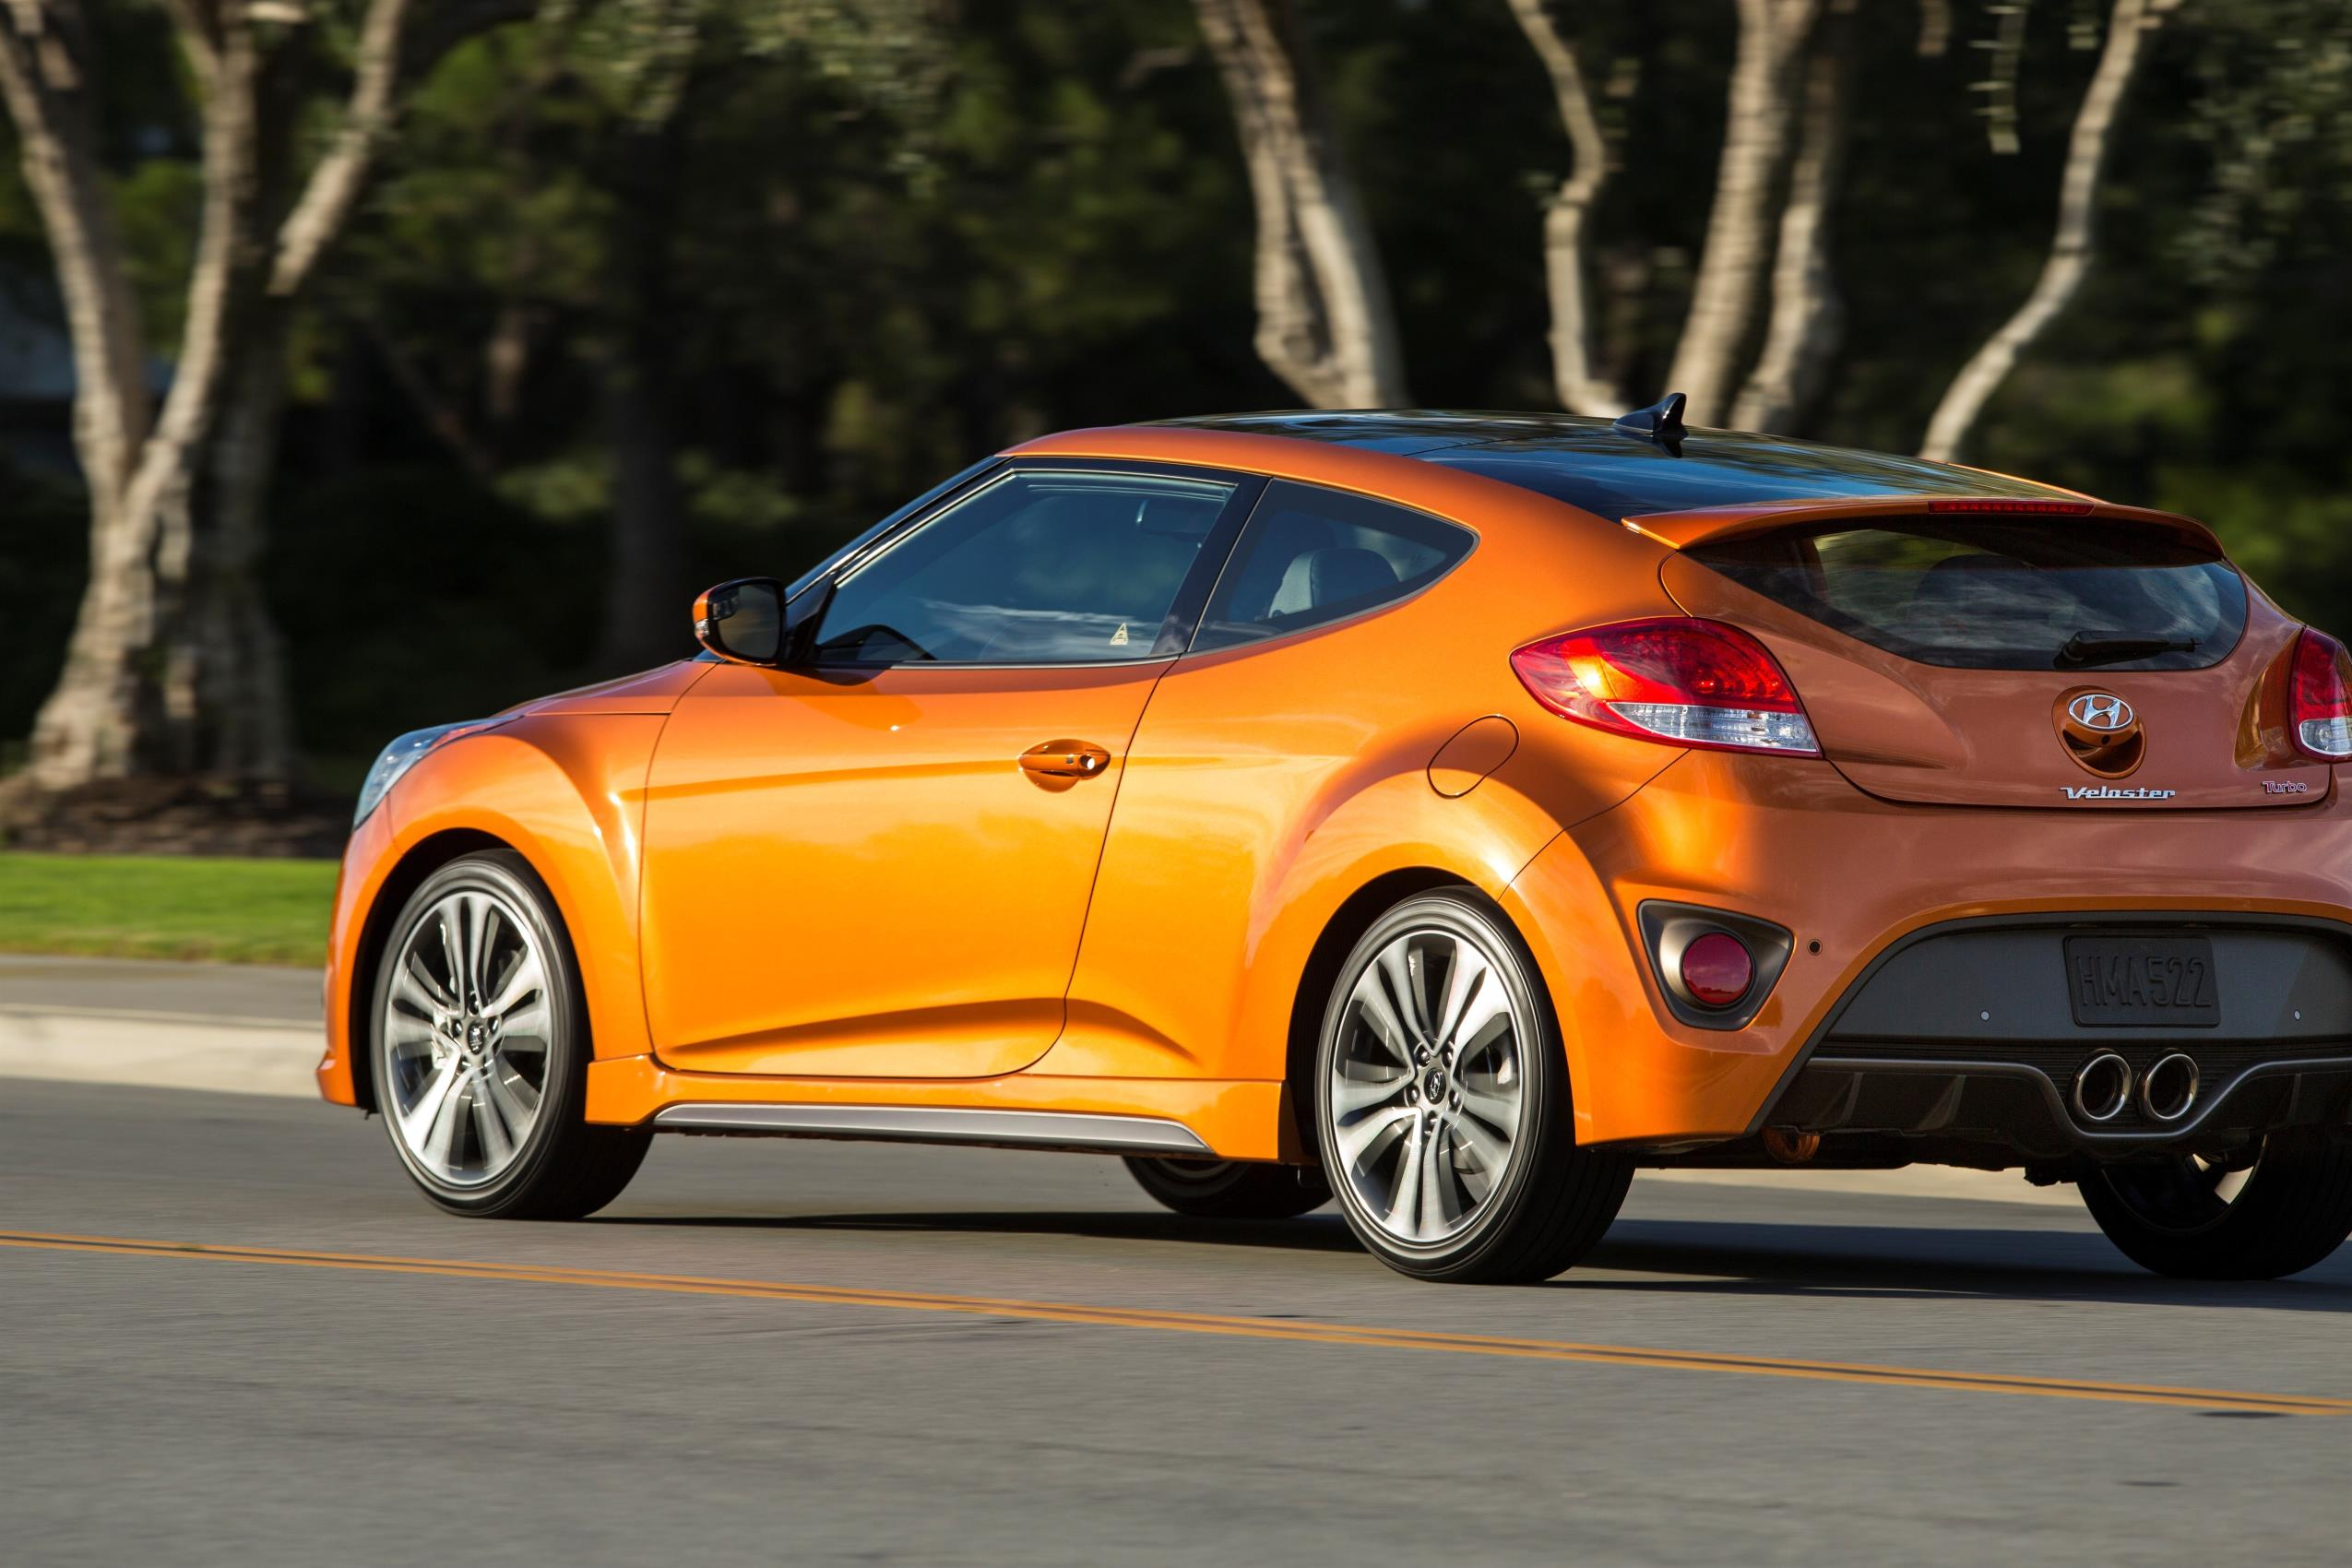 hyundai adds value minded trim level to the veloster autoevolution. Black Bedroom Furniture Sets. Home Design Ideas